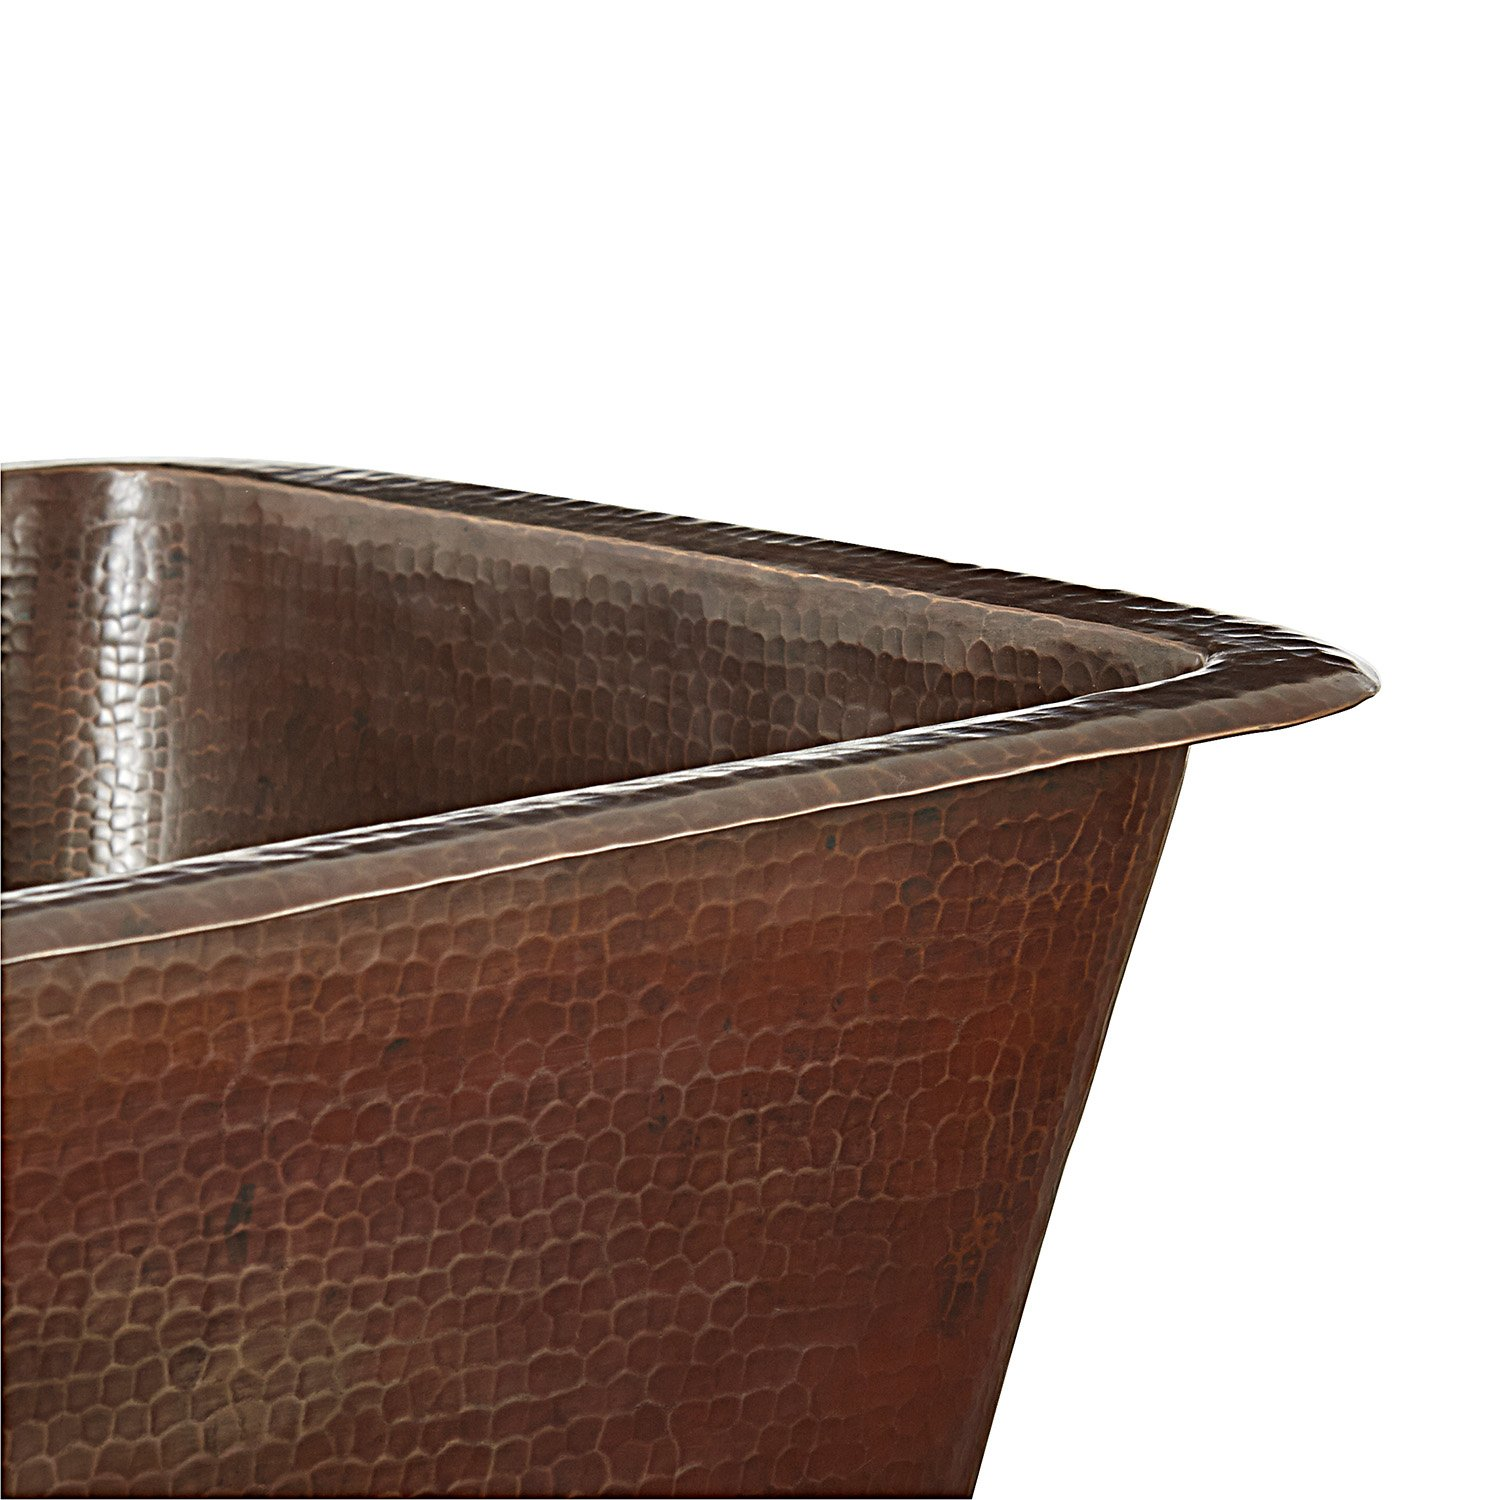 Sinkology SP501-15AG Greco Dual Mount Handmade Pure Solid Prep Bar Sink, 15'', Aged Copper by Sinkology (Image #2)